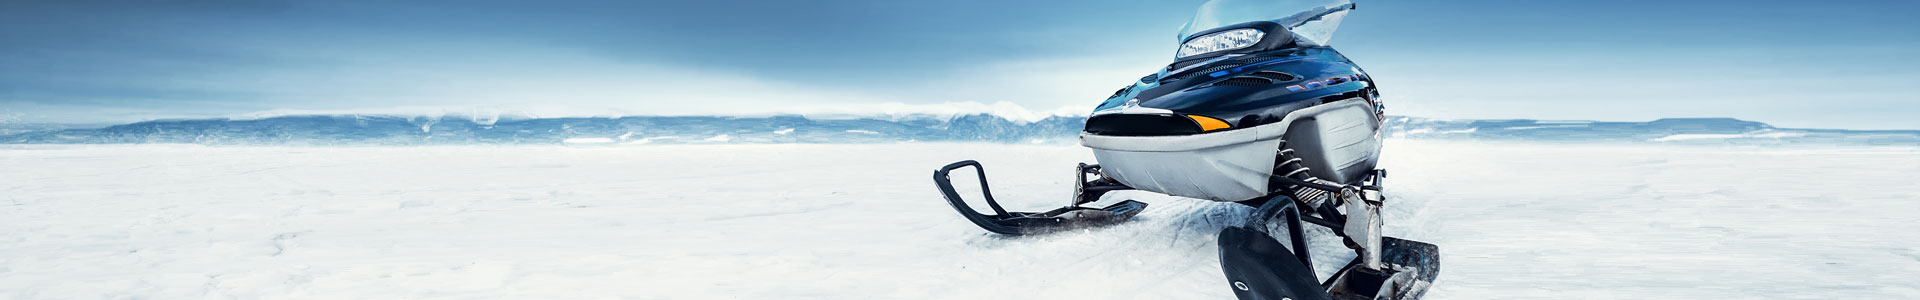 snowmobile in the winter